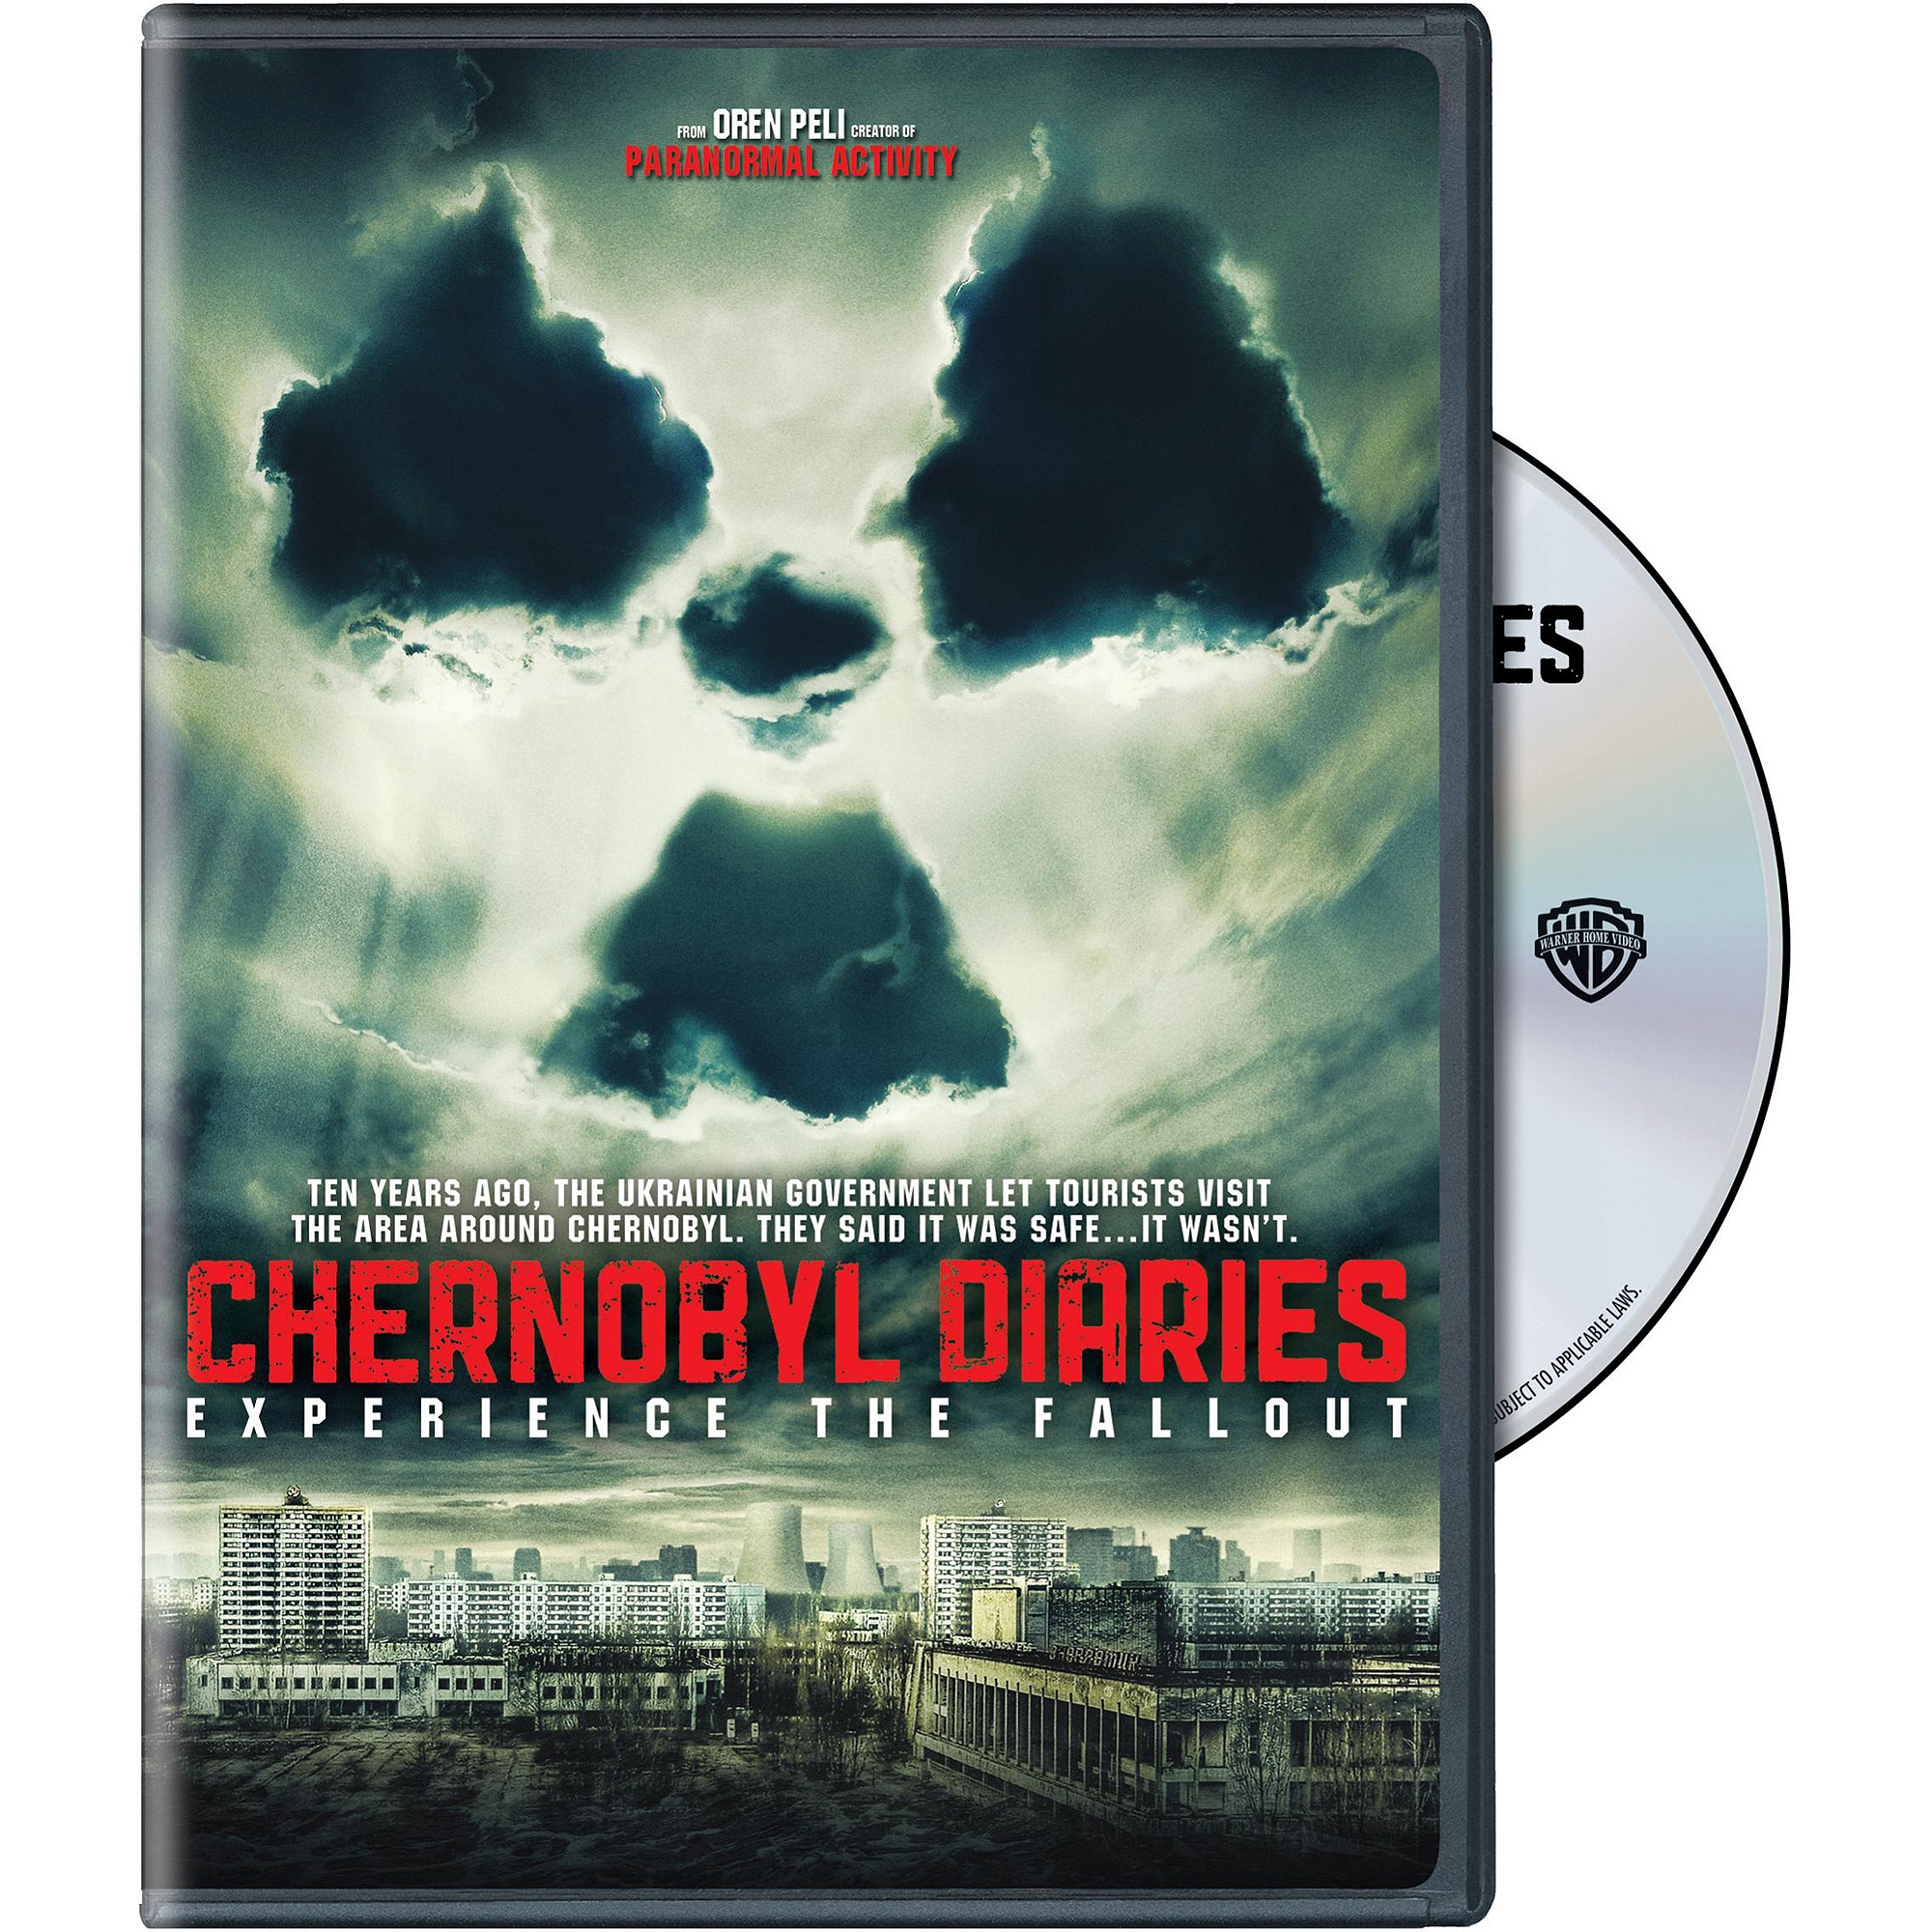 Chernobyl Diaries (DVD   Digital With UltraViolet) (With INSTAWATCH) (Widescreen)